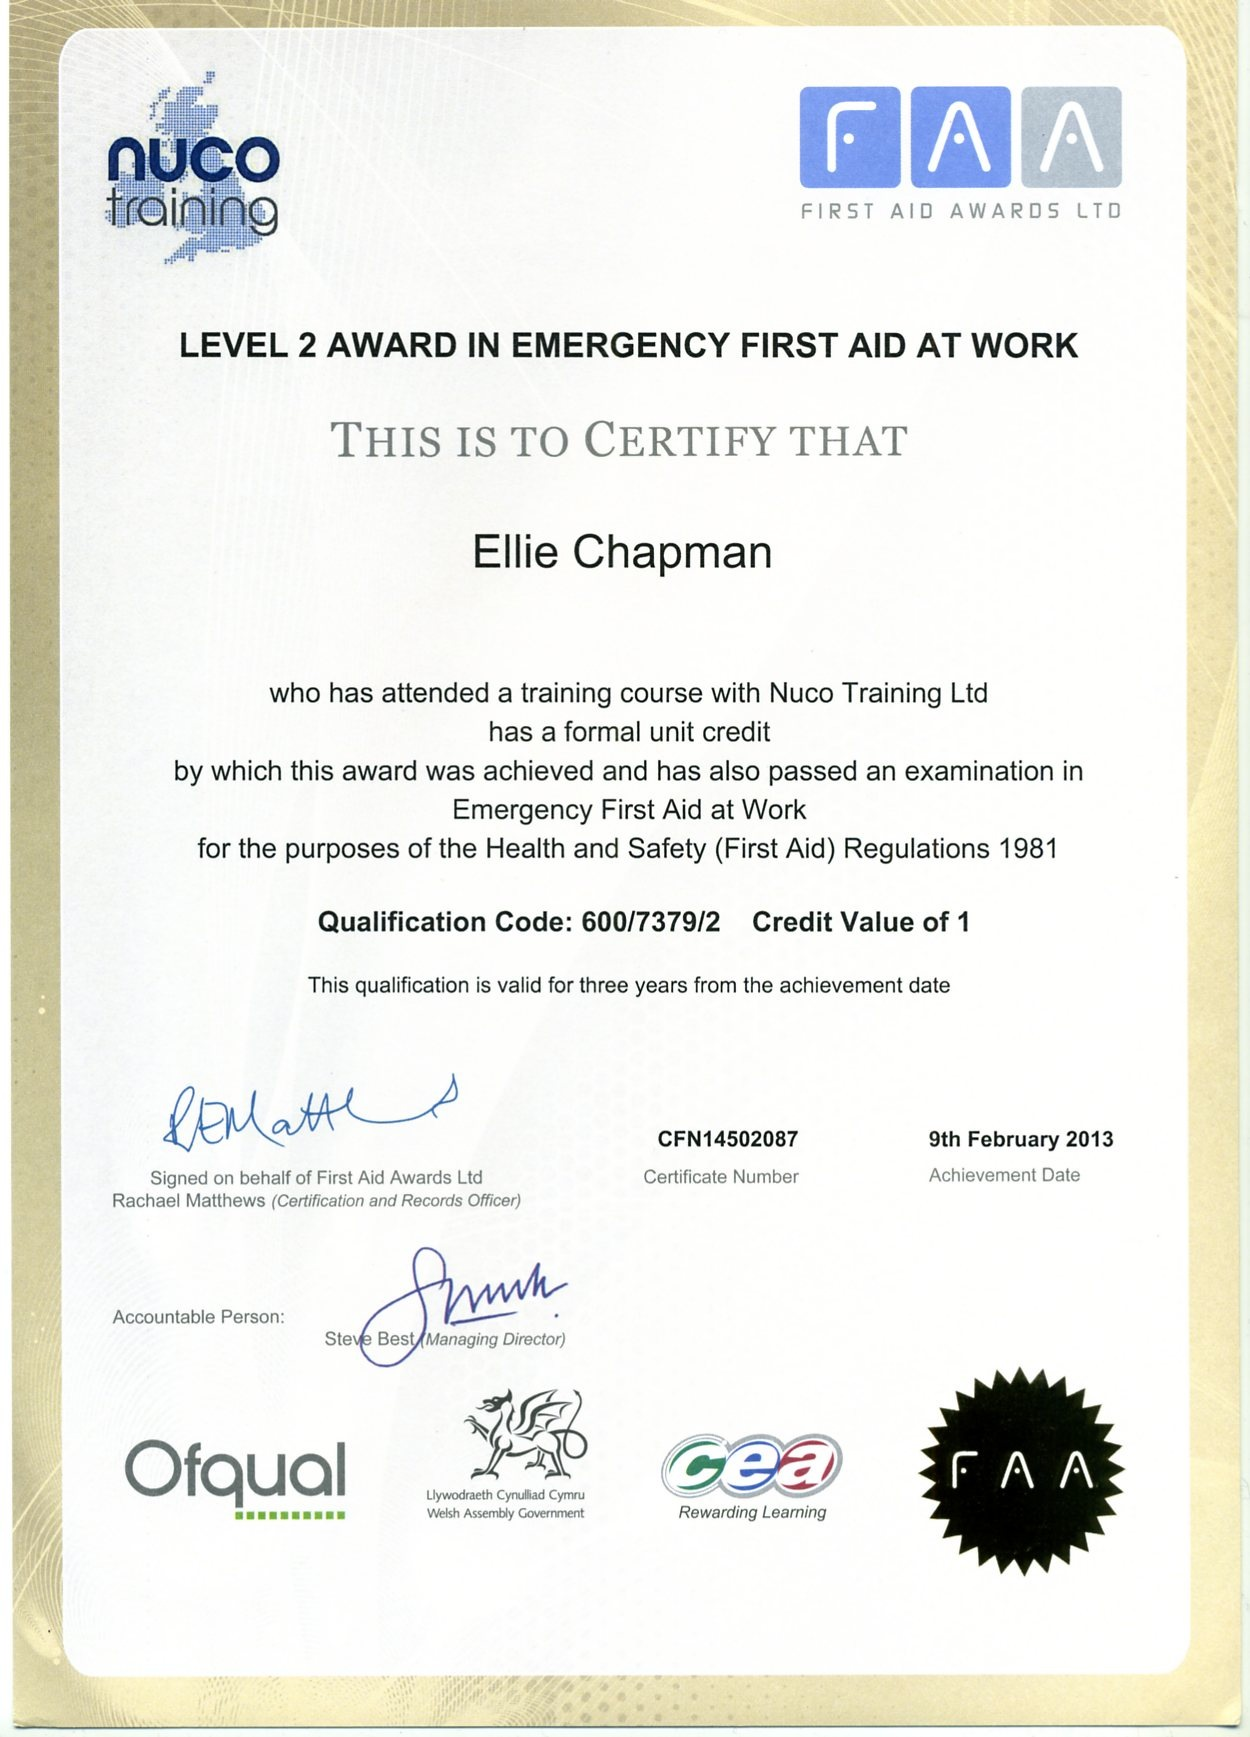 First Aid Training Certificate Template Images Templates Example  Qualification Certificate Template Images Templates Example Free Instructor Within First Aid Certificate Template